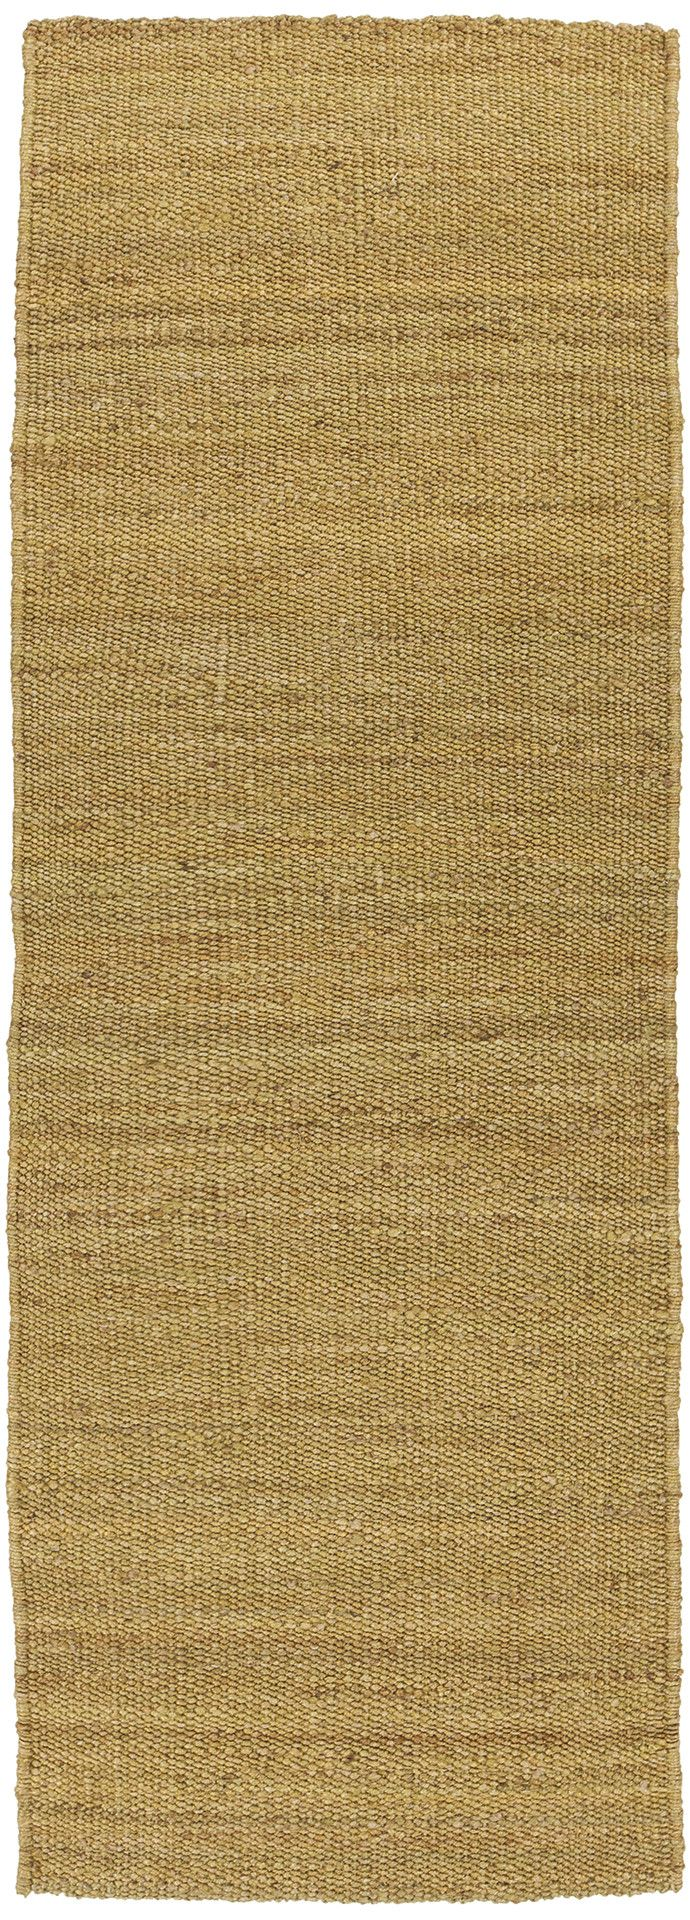 Green Hand-Woven Transitional Rug